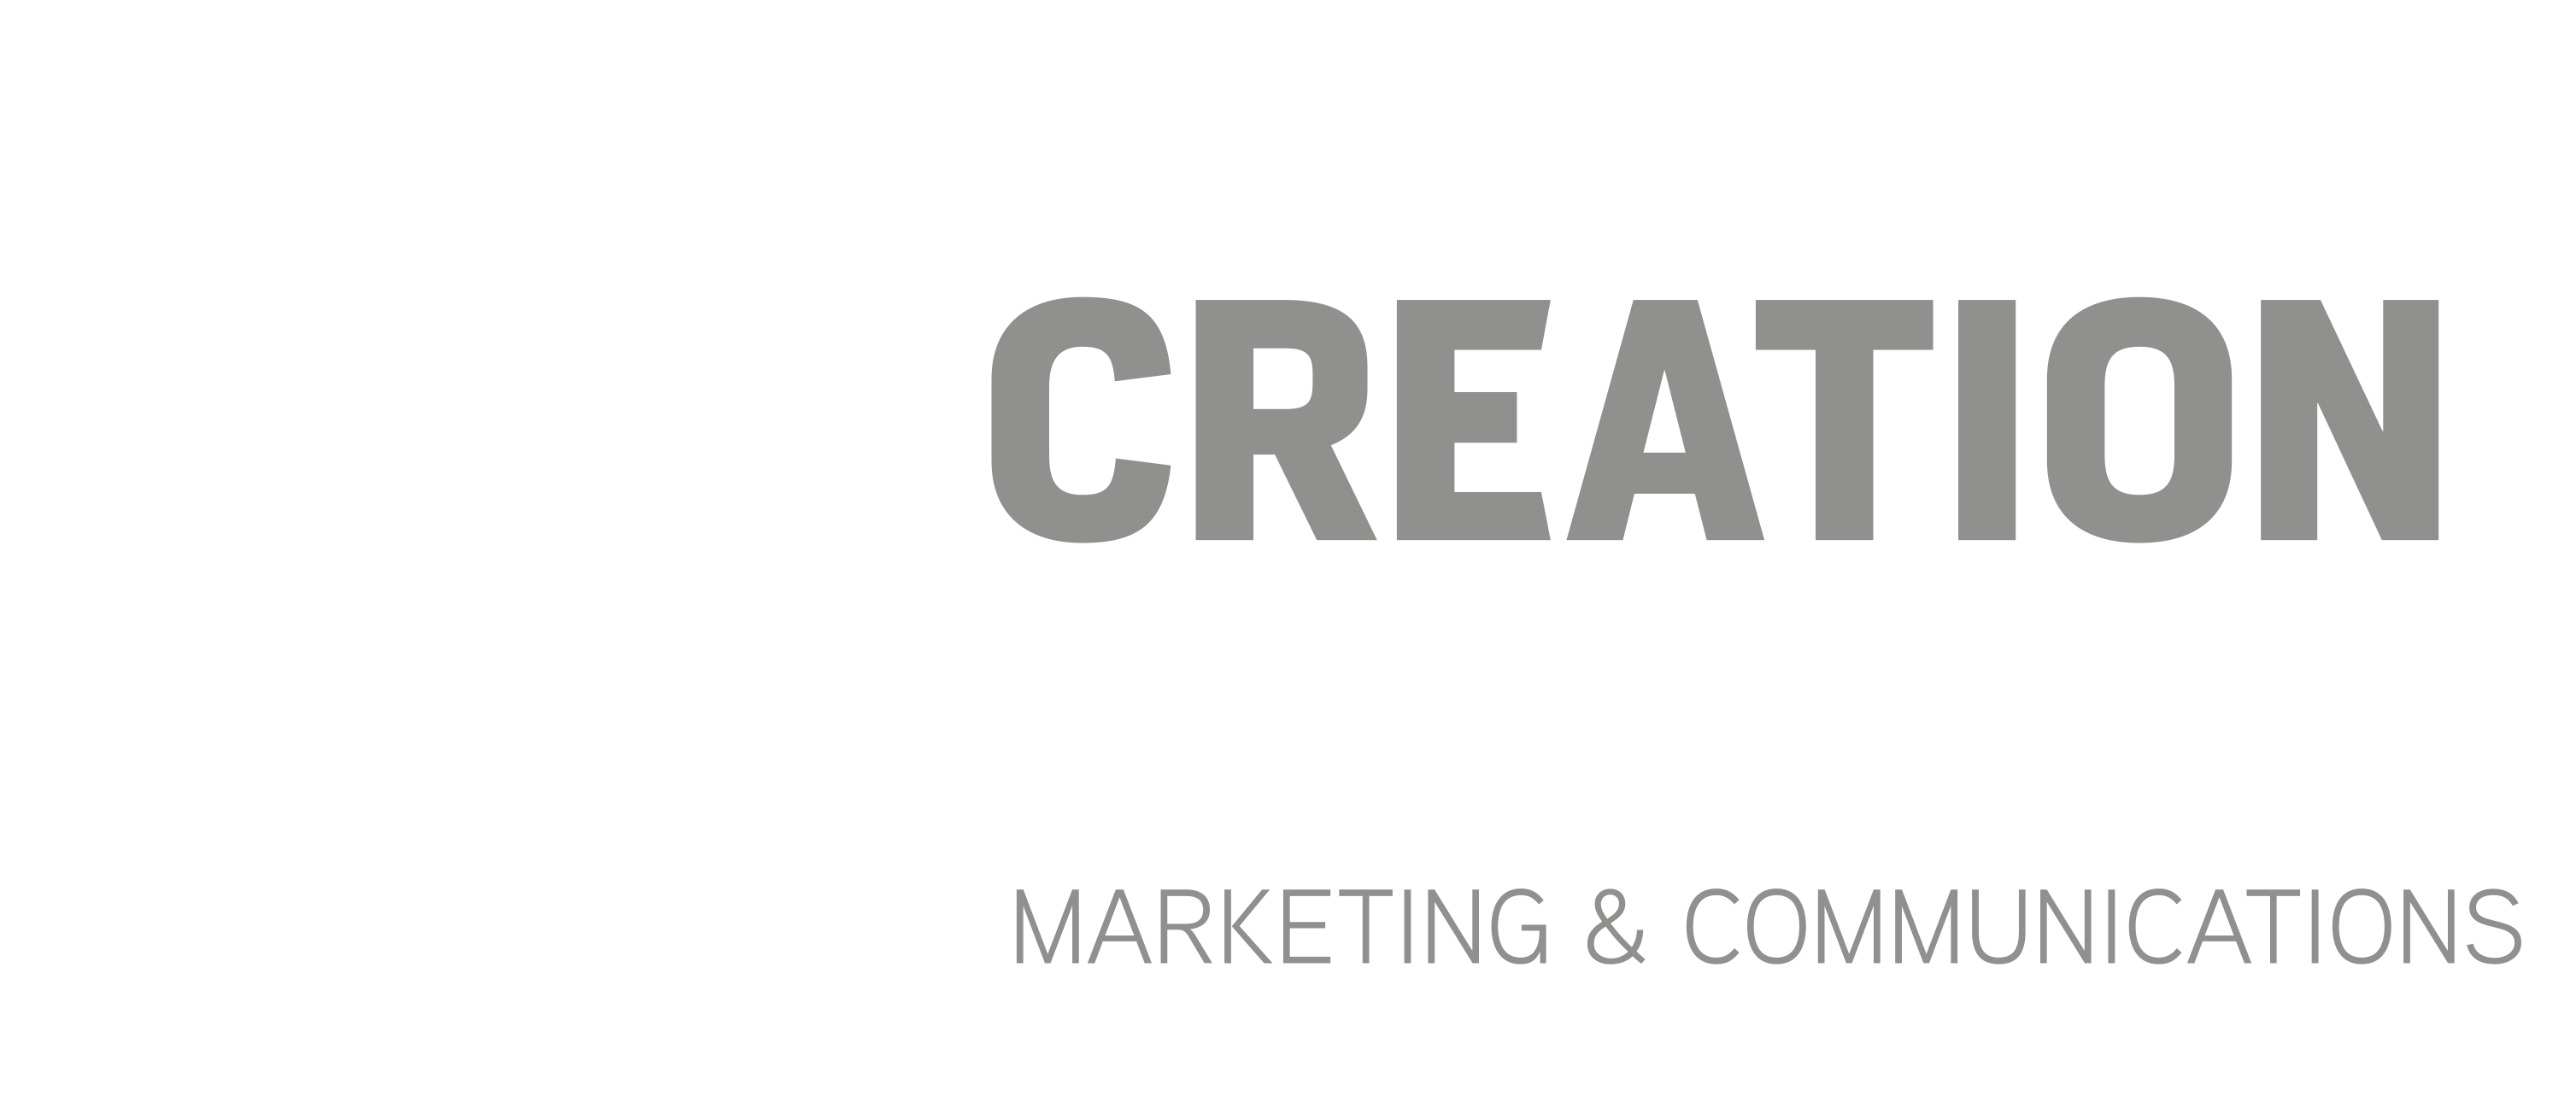 Creation Media Logo